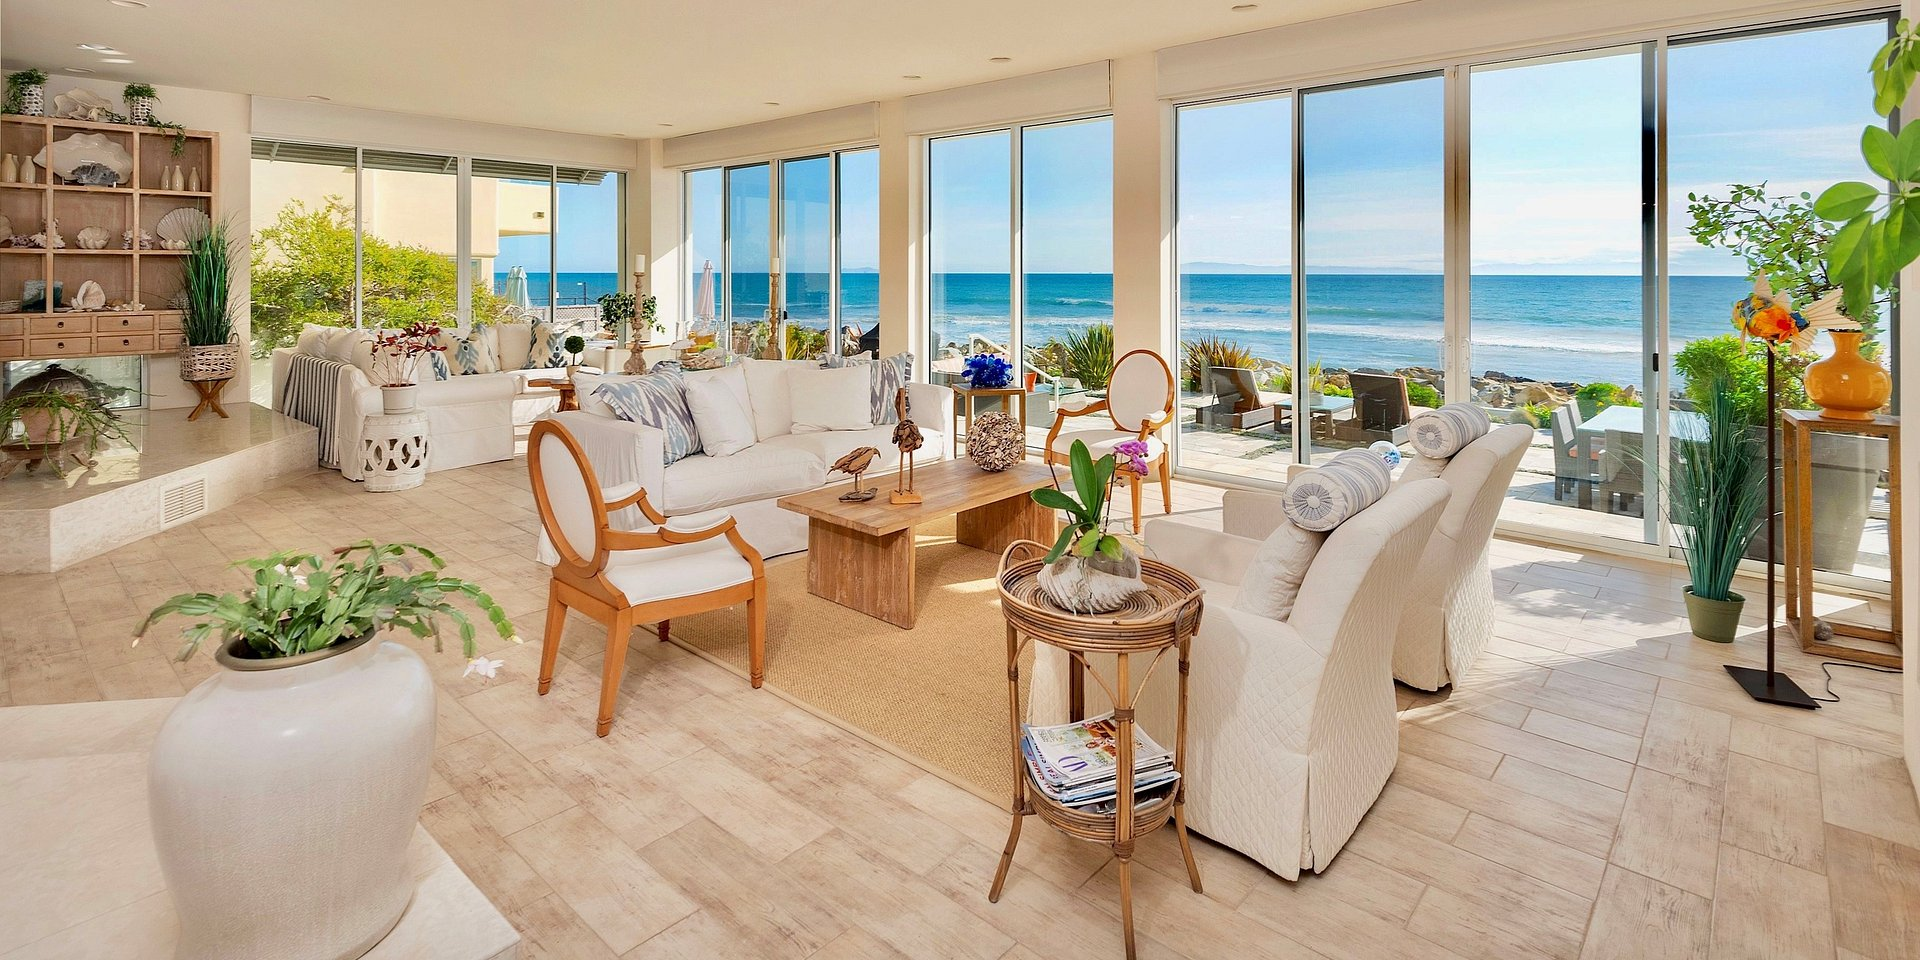 Coldwell Banker Residential Brokerage Lists Oceanfront Ventura Property for $4.9 Million